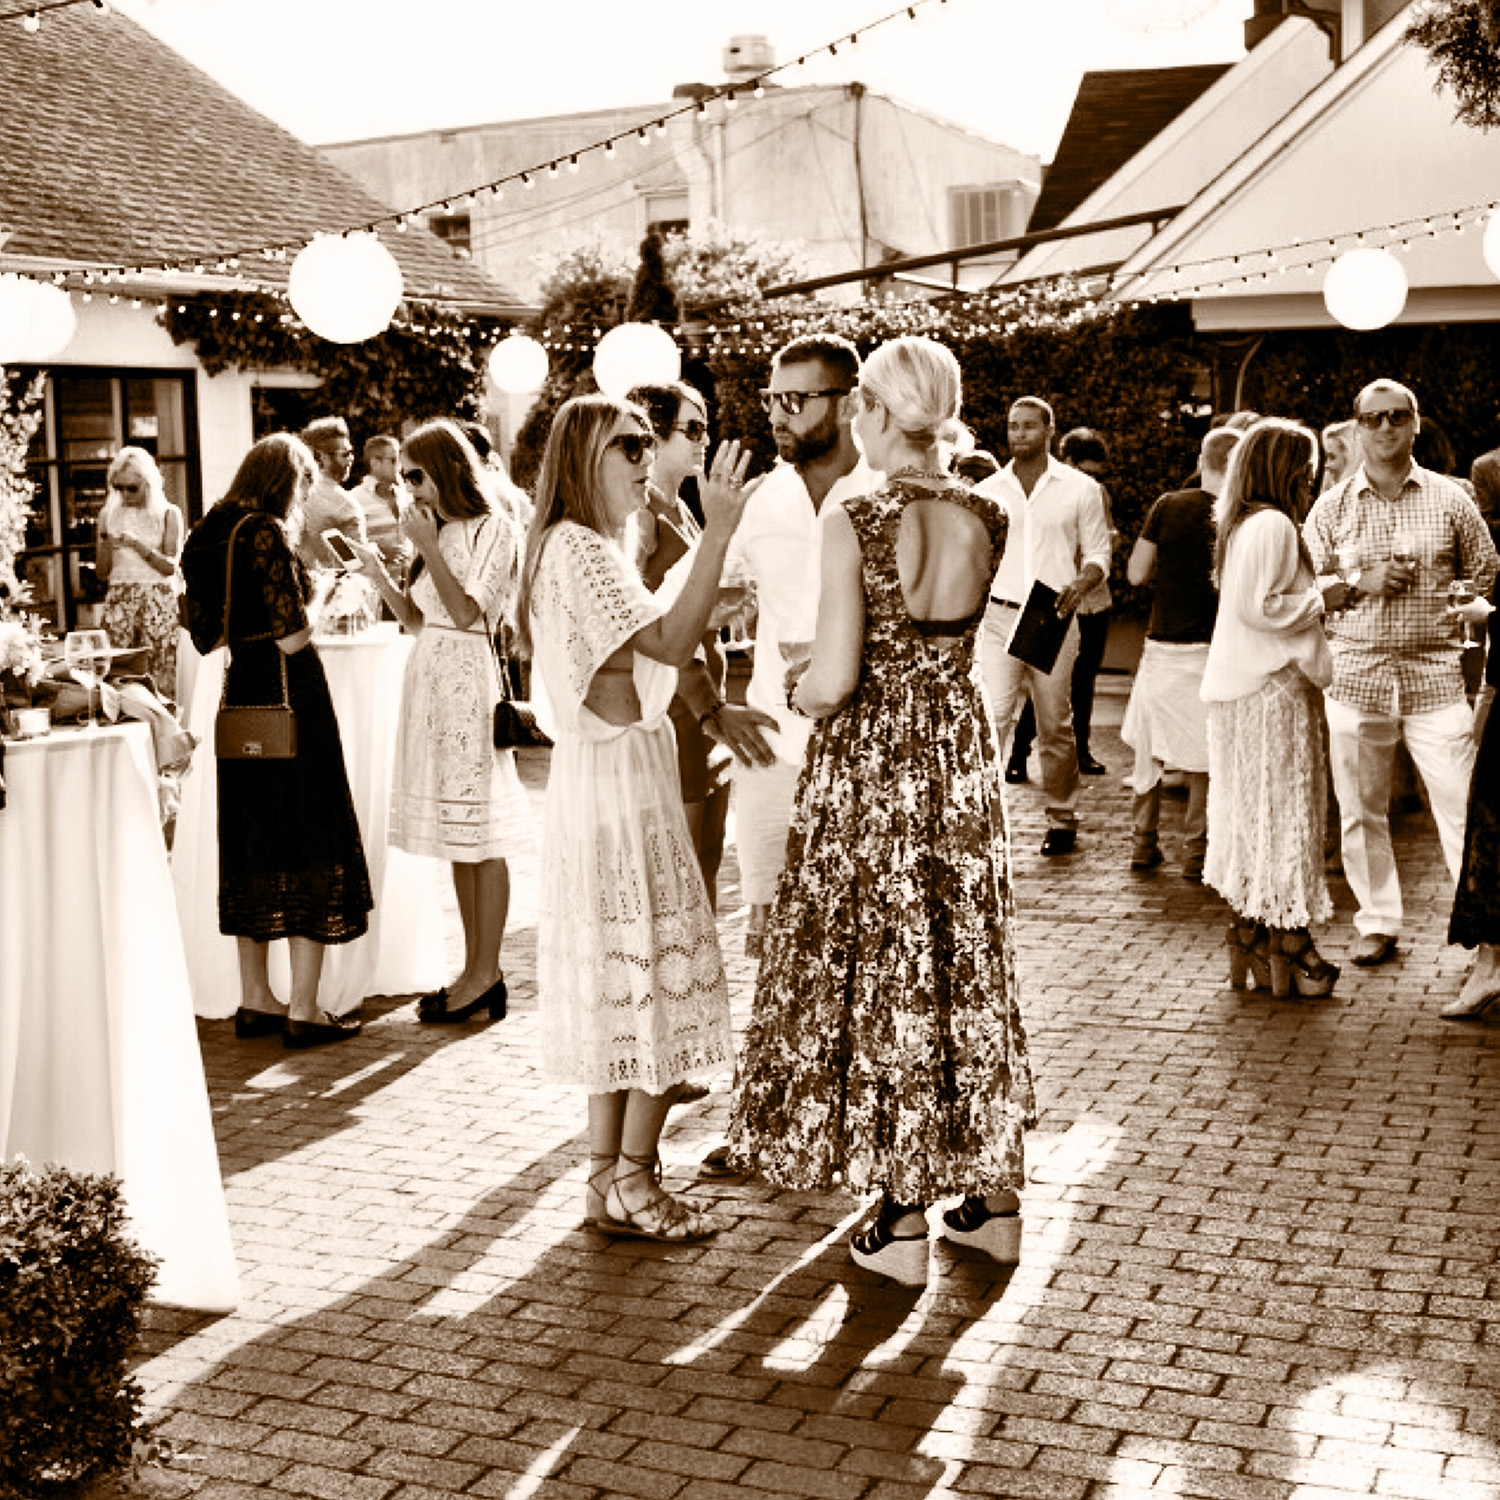 People gathered in a courtyard for Zimmermann's East Hampton Launch, June 2014